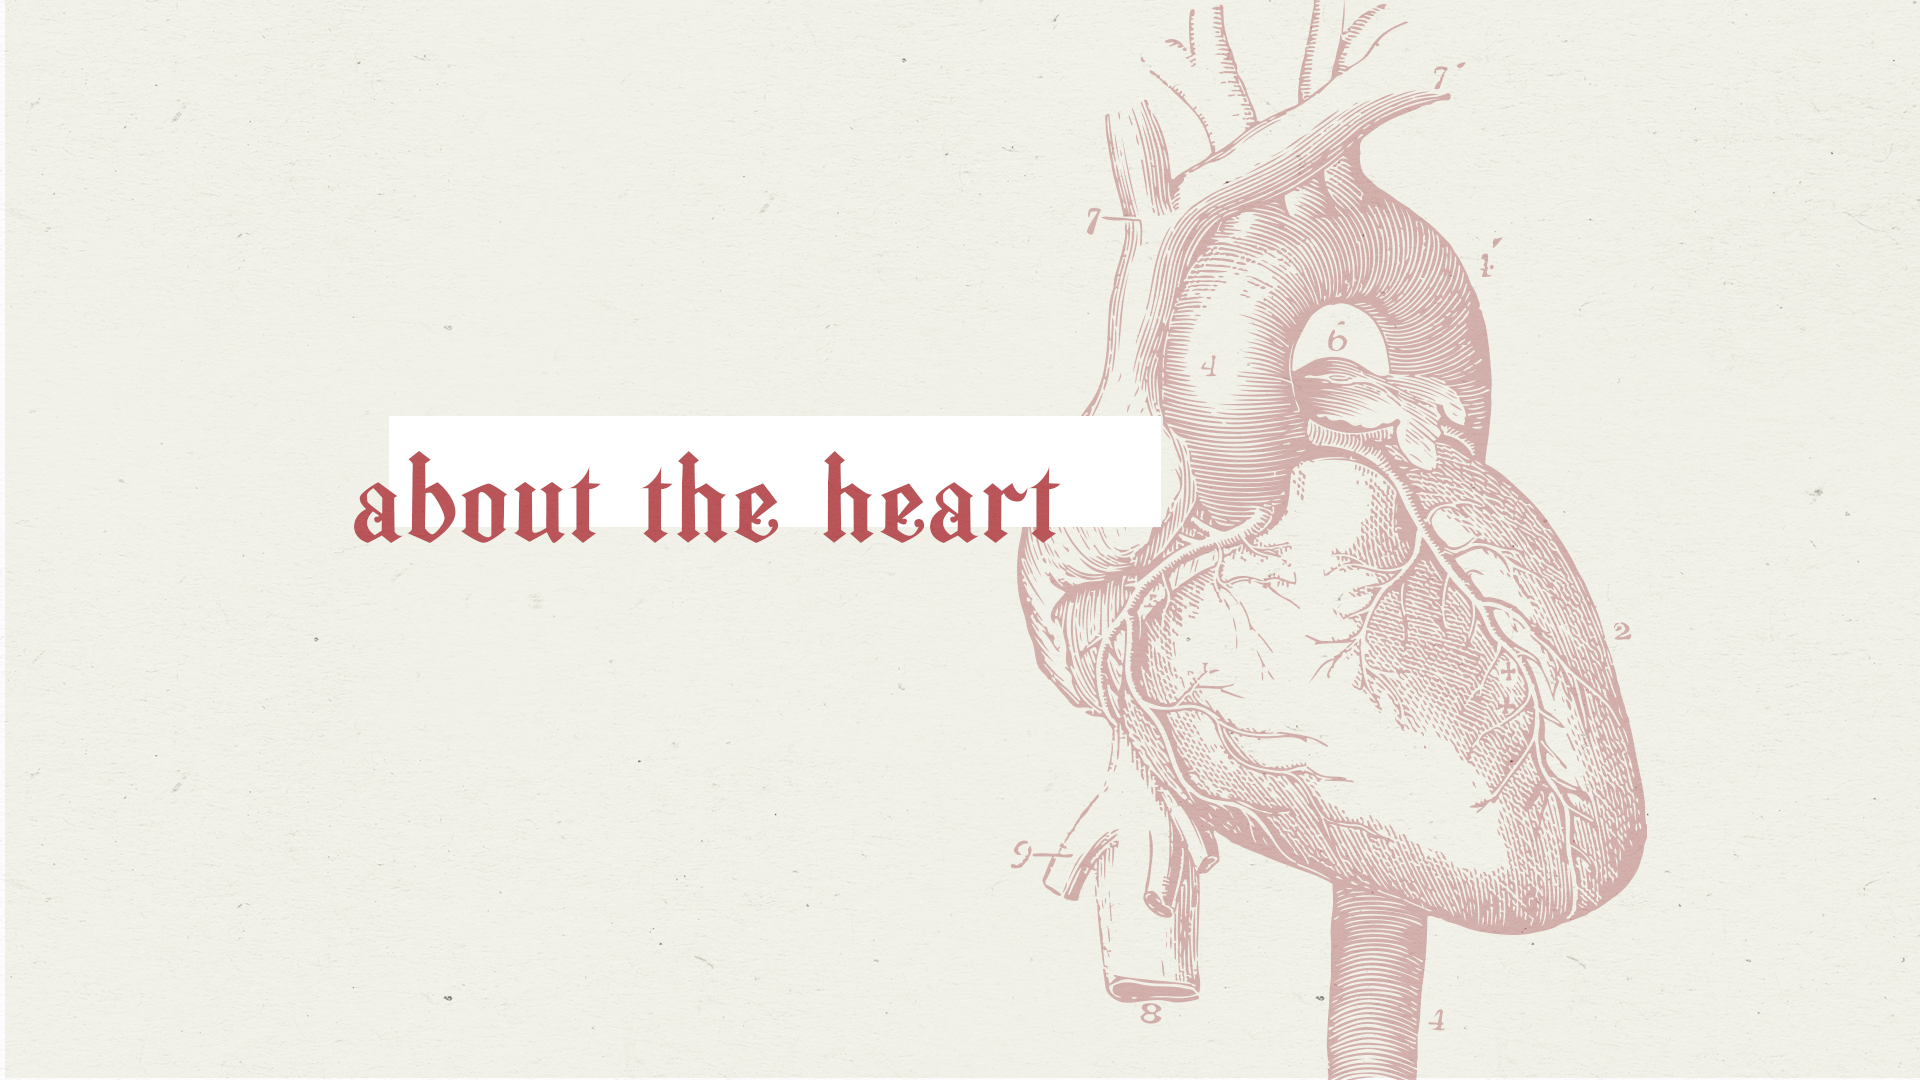 About The Heart